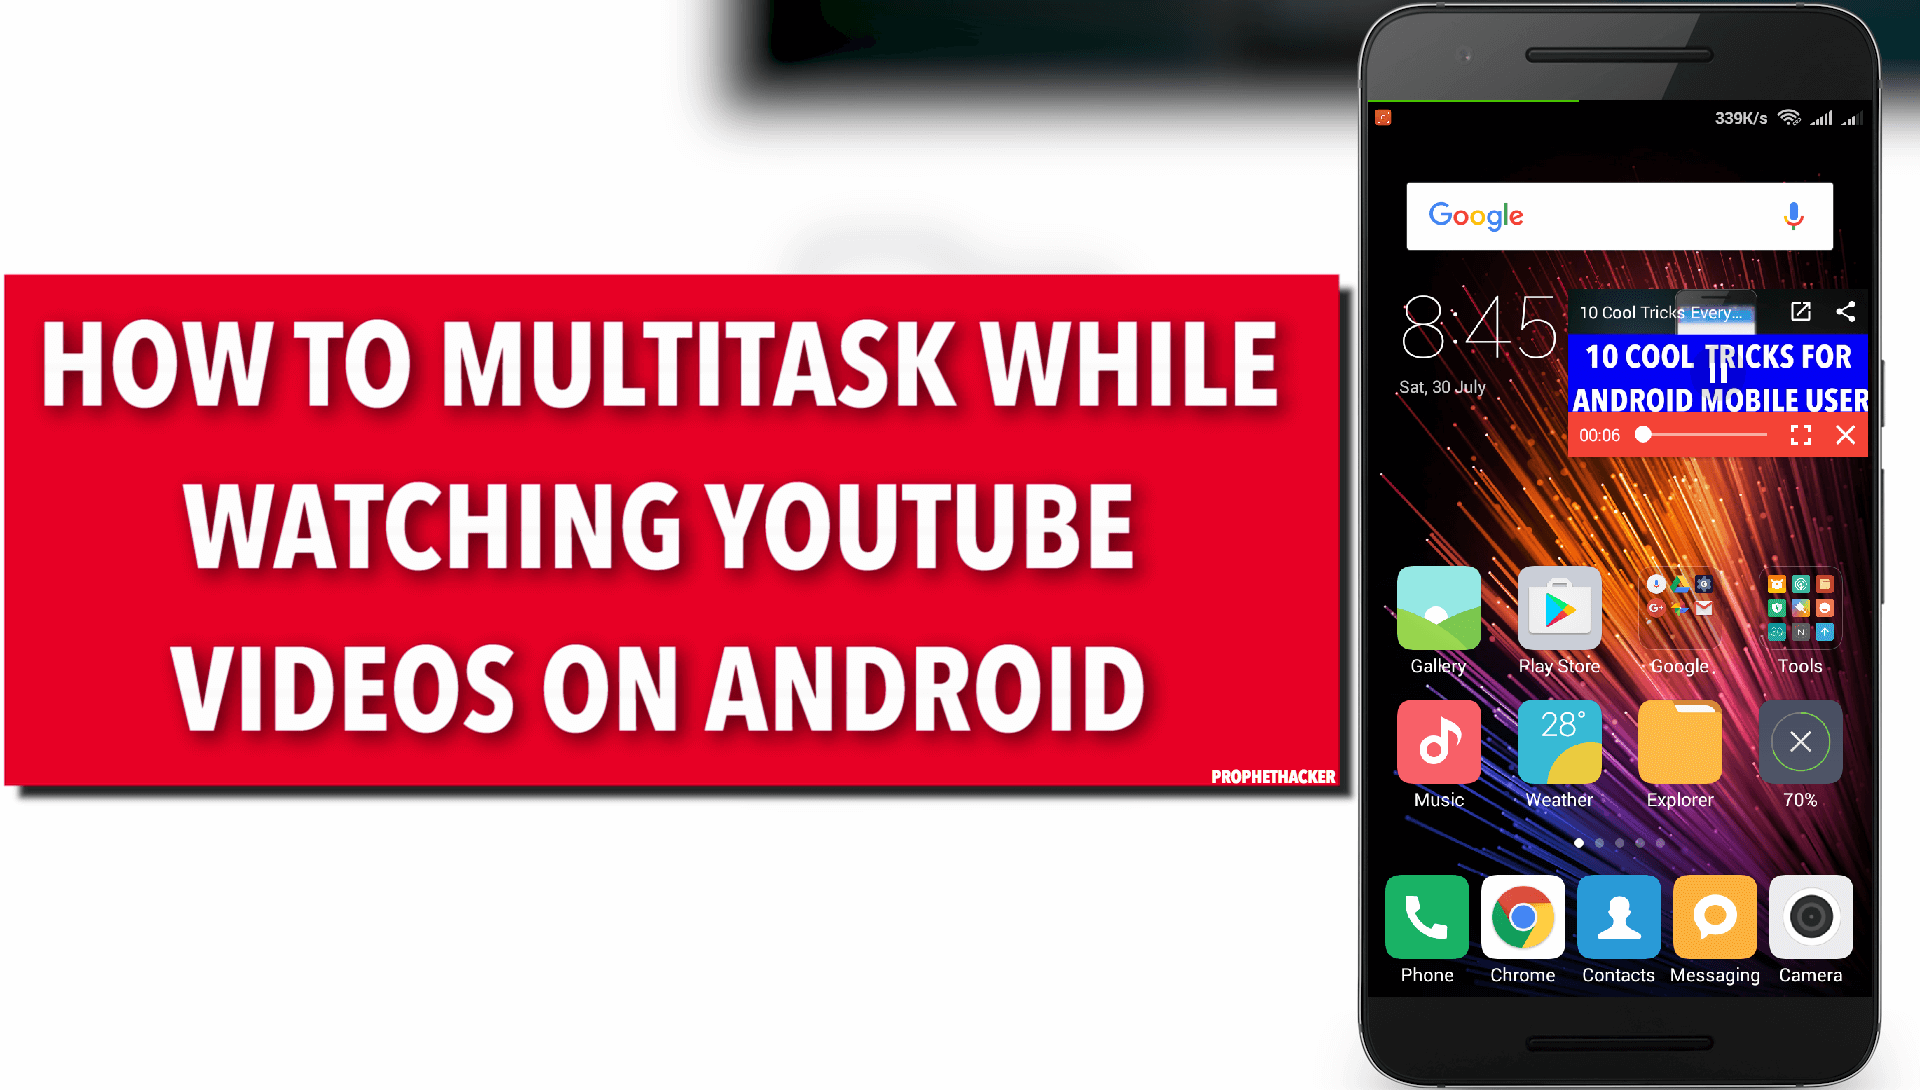 How to Multitask while watching Youtube Videos on Android